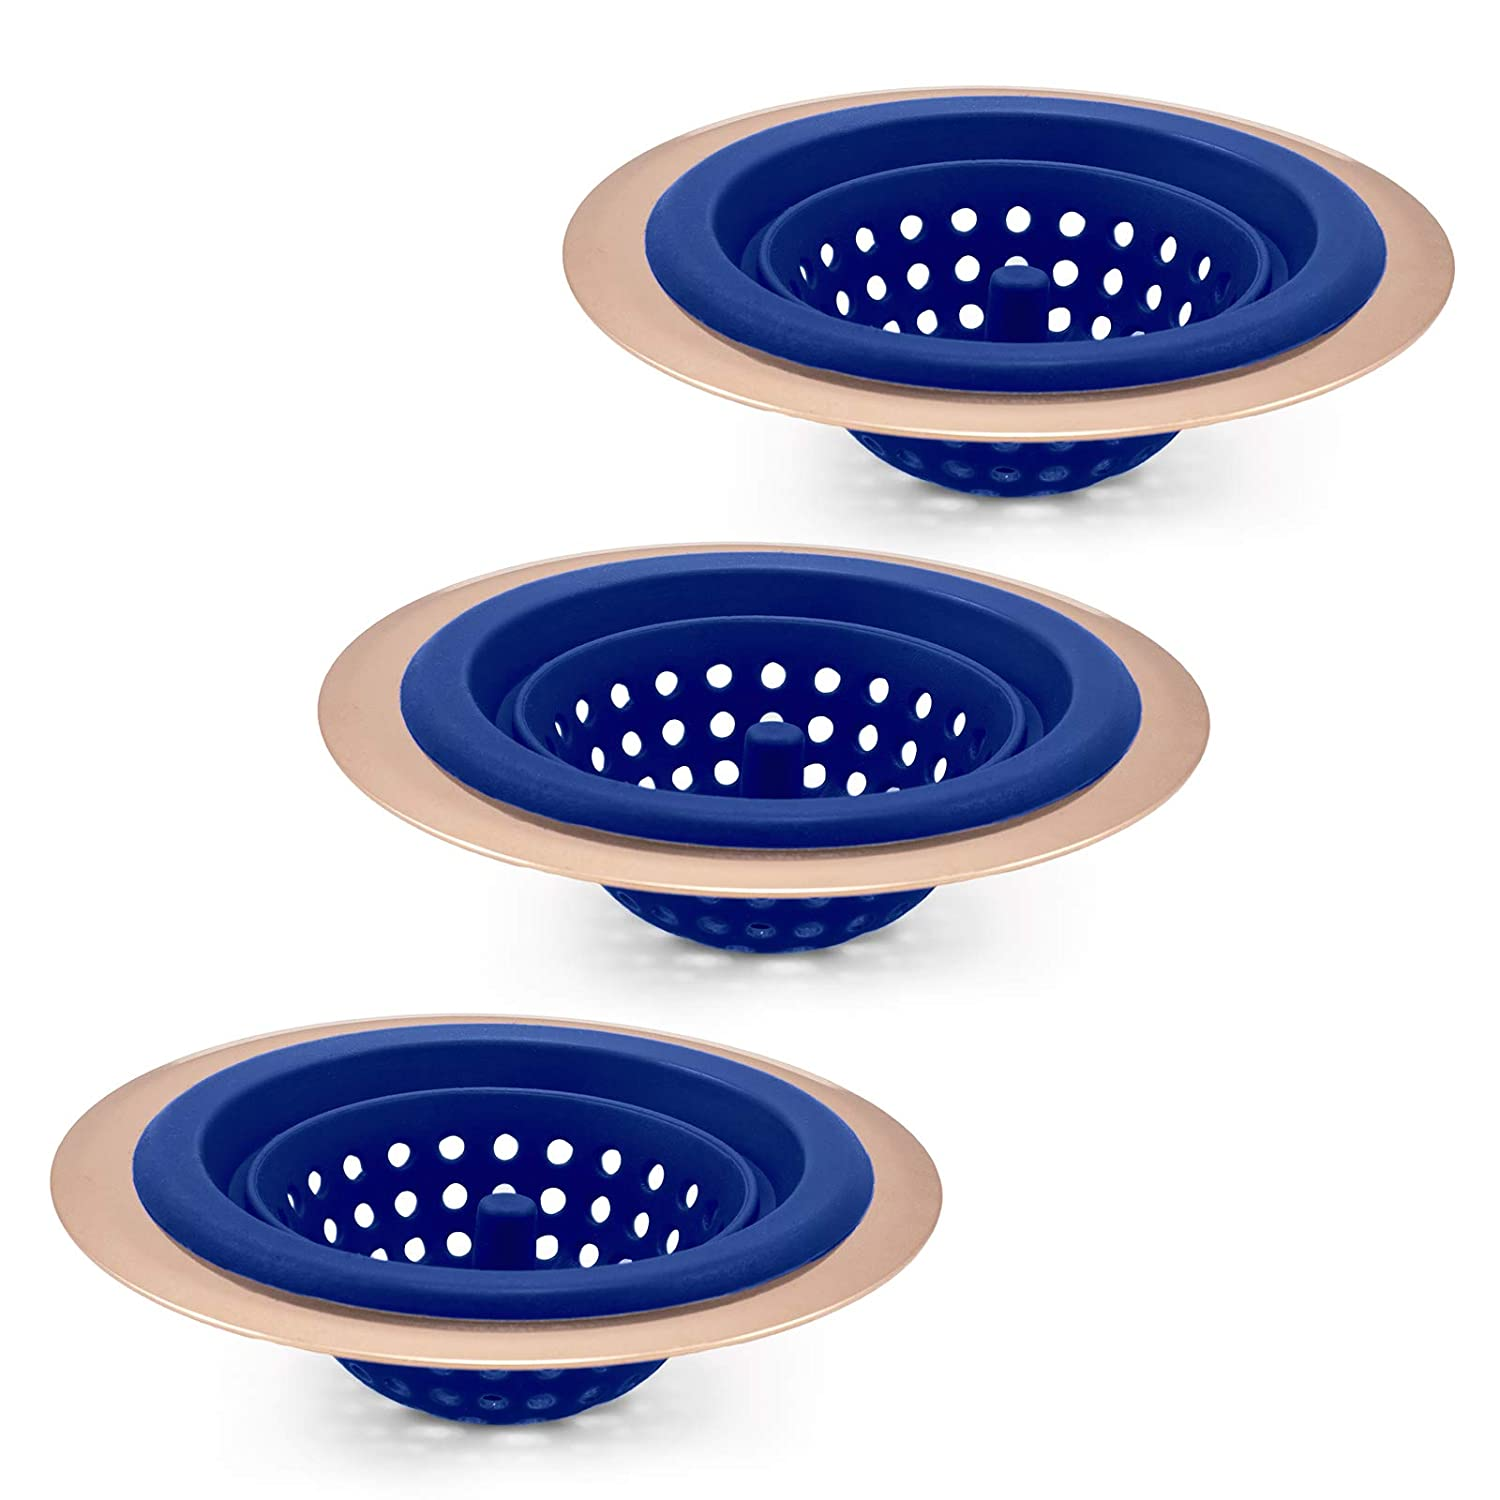 COOK with COLOR Set of 3 Sink Strainers, Flexible Silicone Kitchen Sink Drainers, Traps Food Debris and Prevents Clogs, Large Wide 4.5' Diameter Rim – Blue and Copper